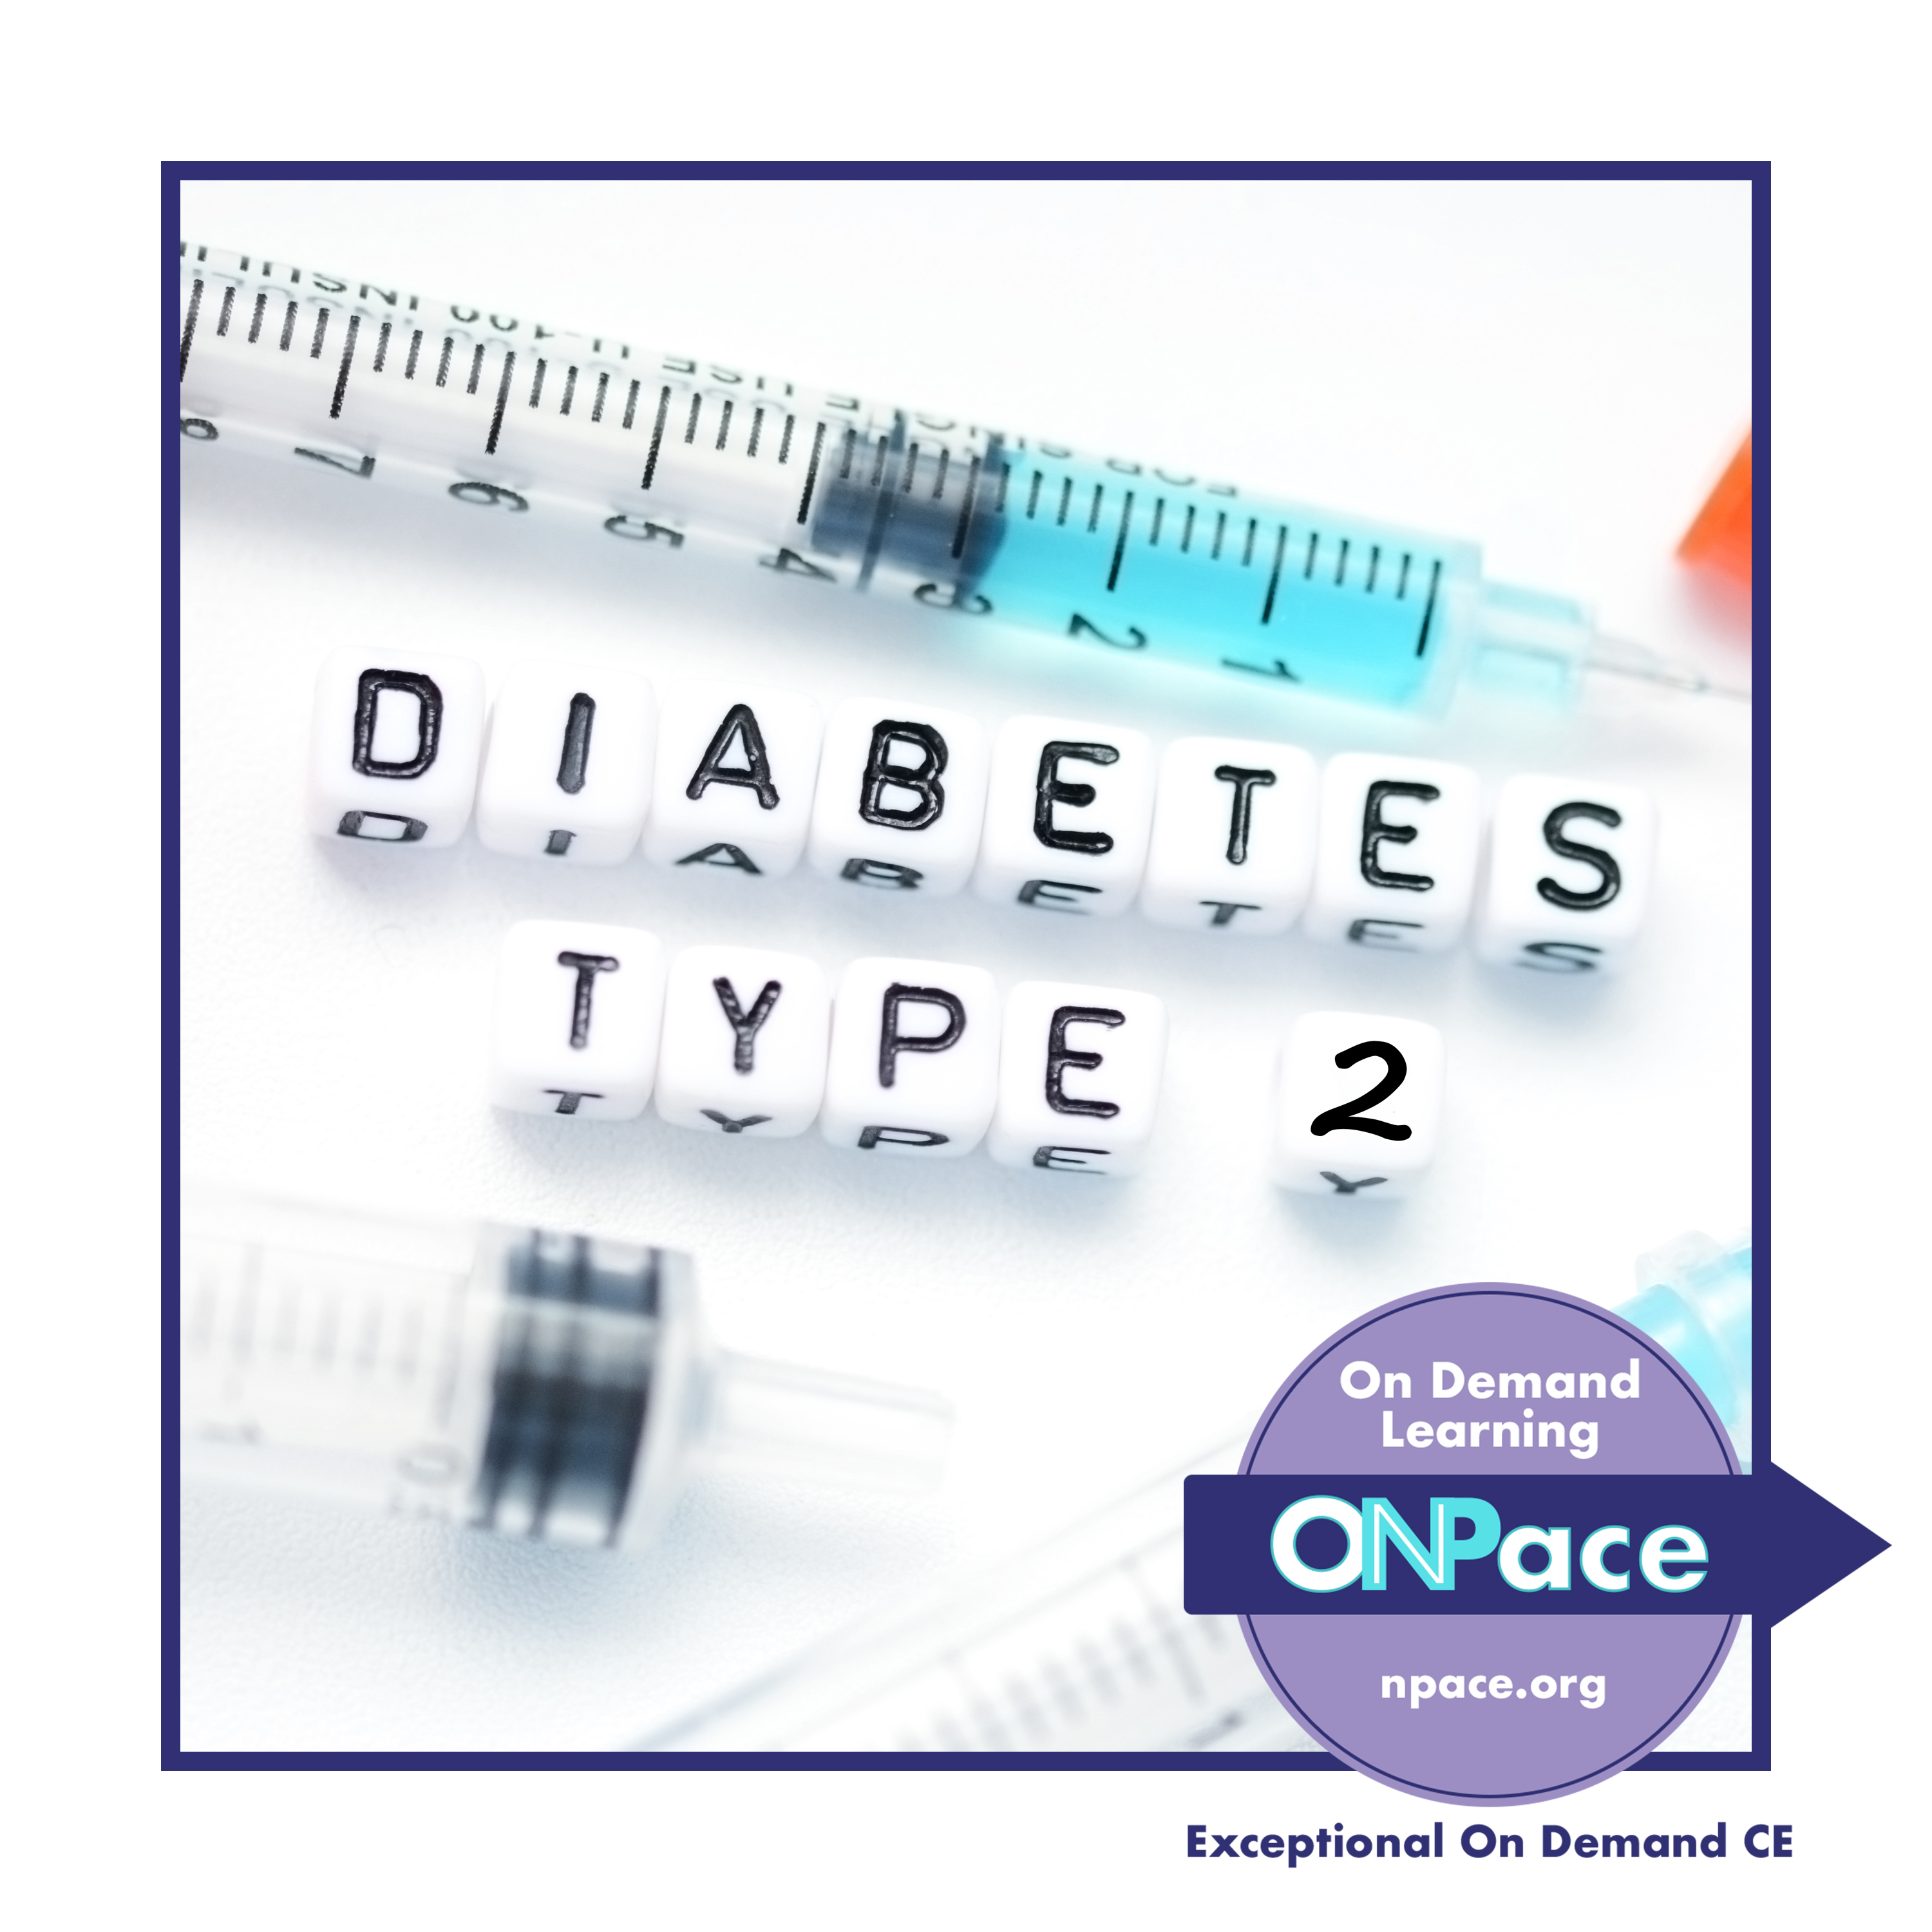 NPACE Pharmacotherapeutics of Inventive Injectables for Diabetes